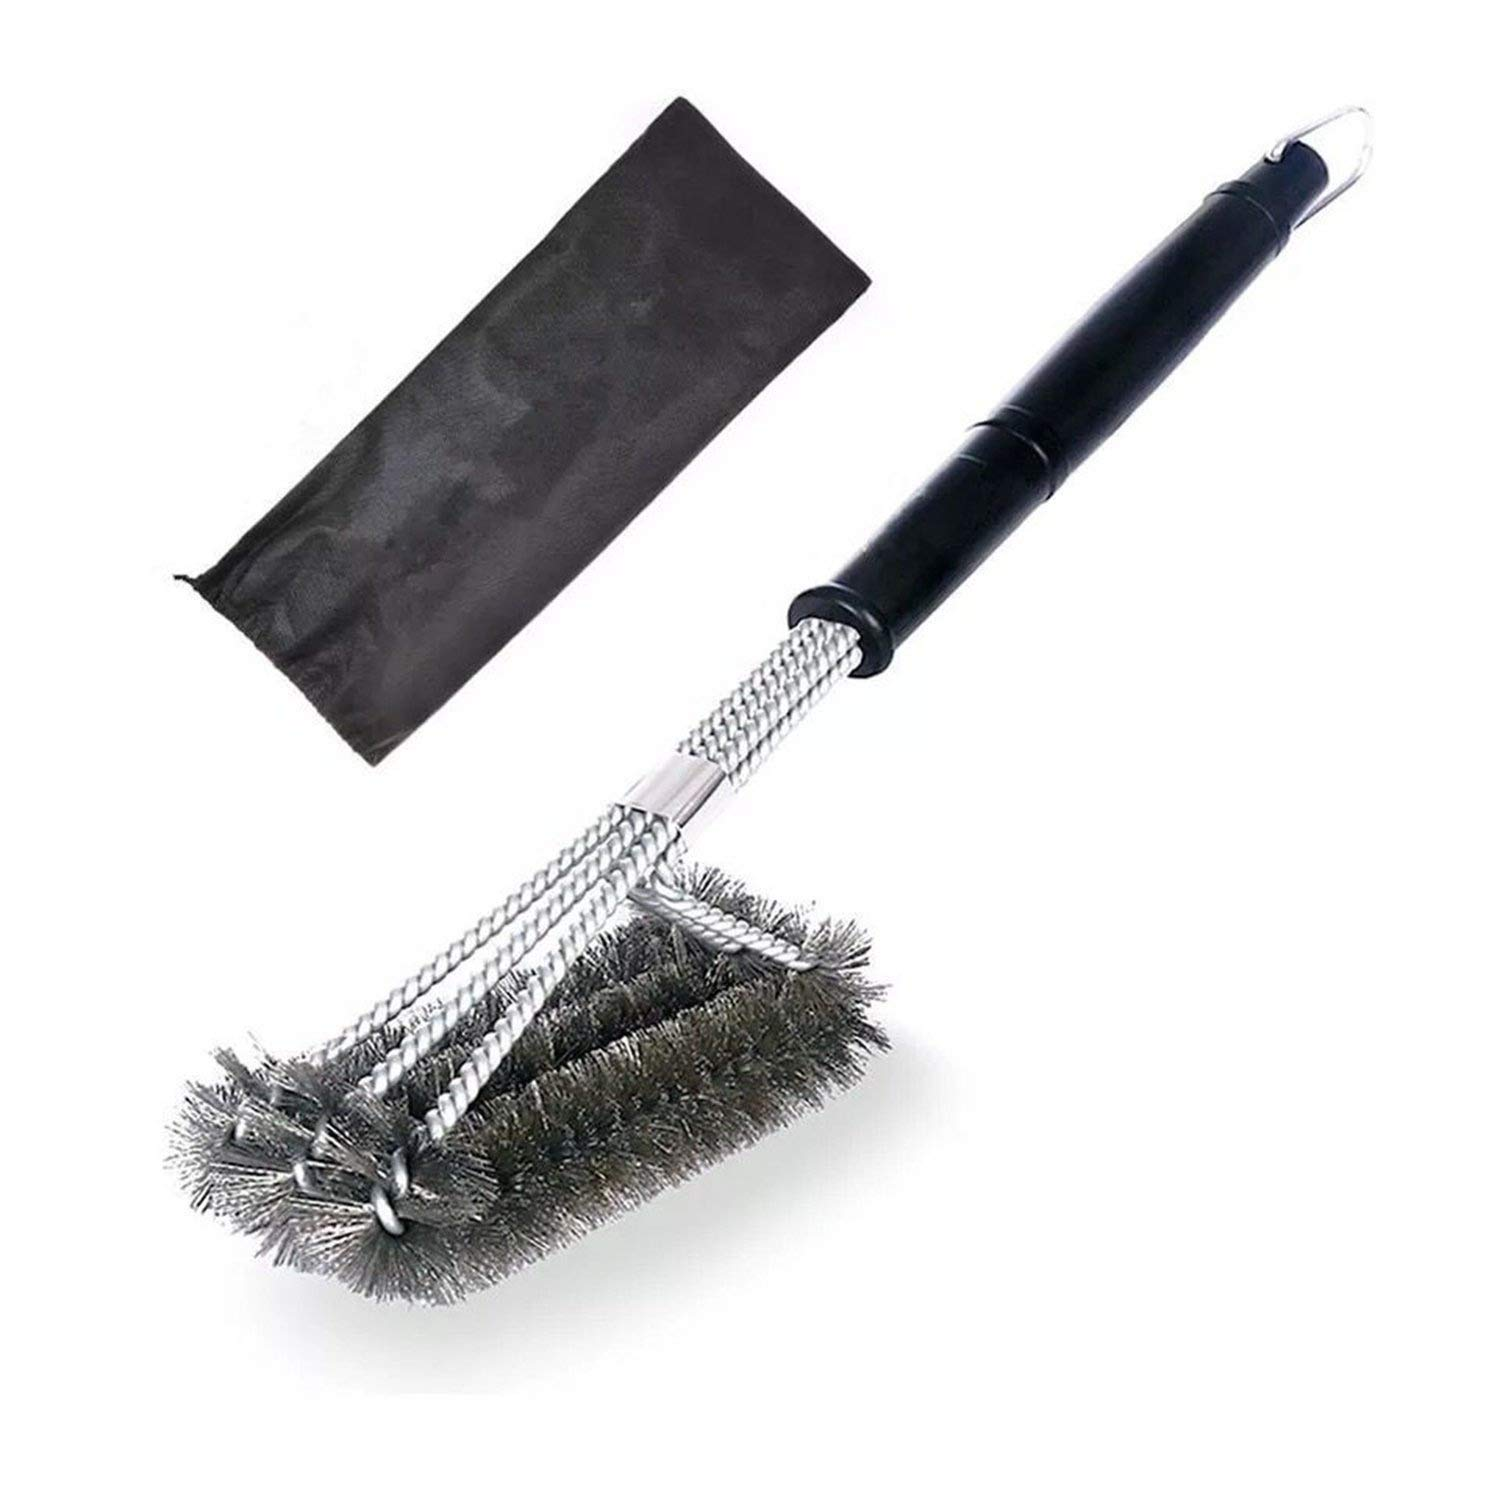 ahere Grill Brush BBQ,18'' BBQ Grill Cleaning Brush - Stainless Steel Wire Bristles 3-in-1 Cleaning Bruhes Provides Effortless Cleaning.009